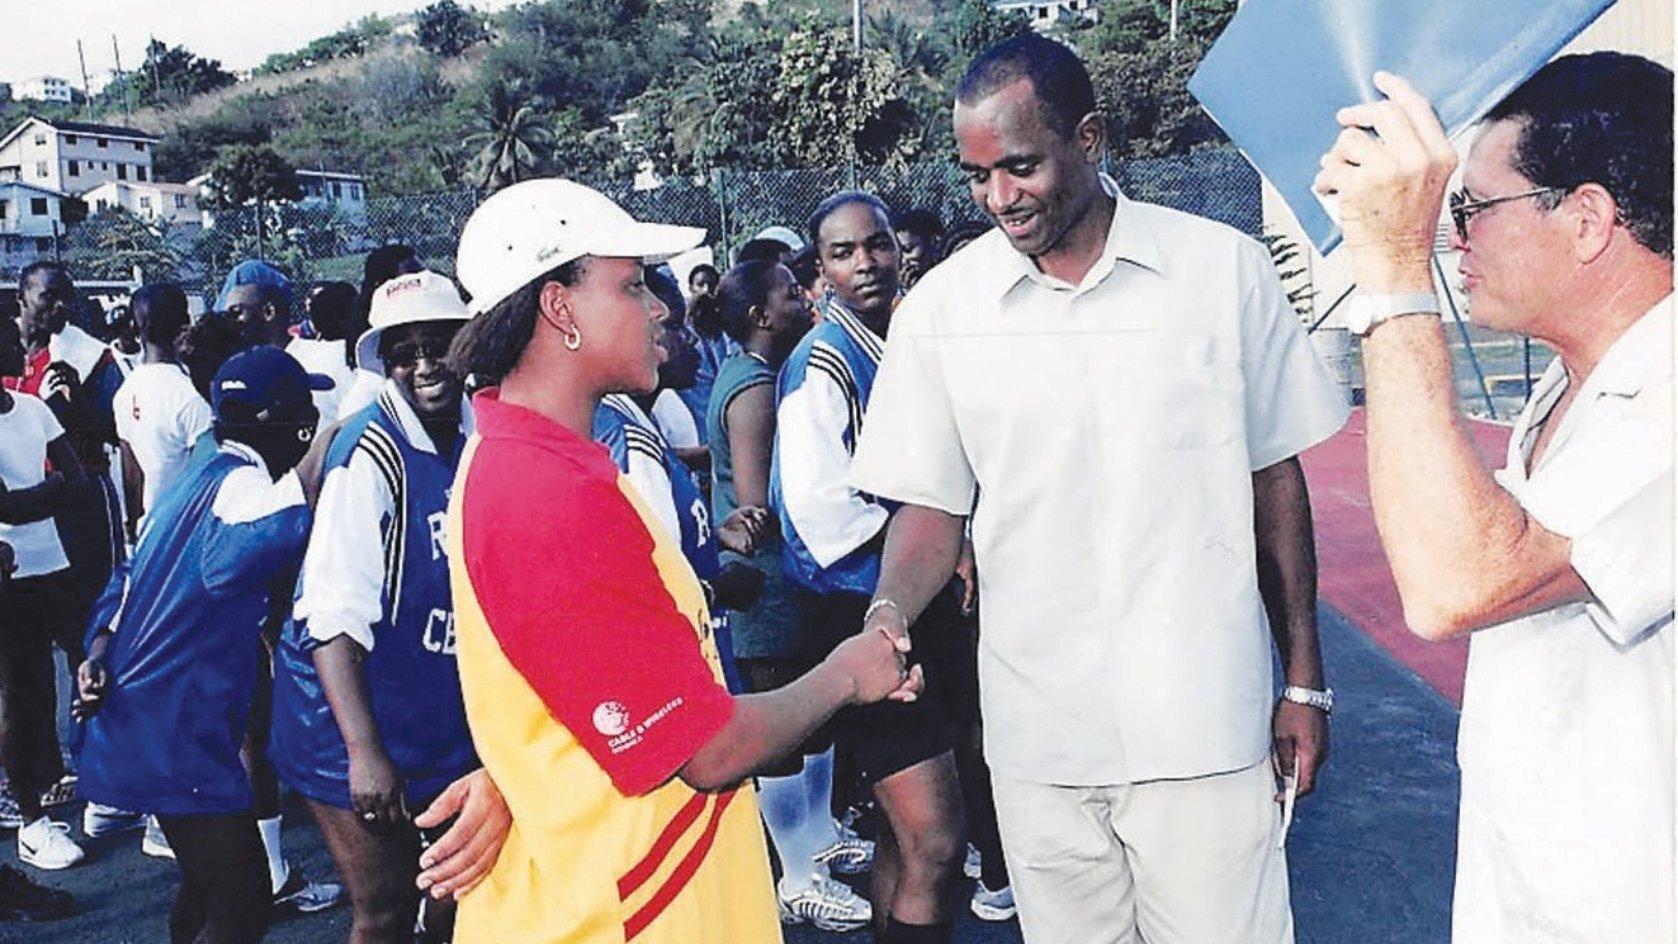 Skerrit as Sports Minister; Rupert Sorhaindo, extreme right (ca 2000)